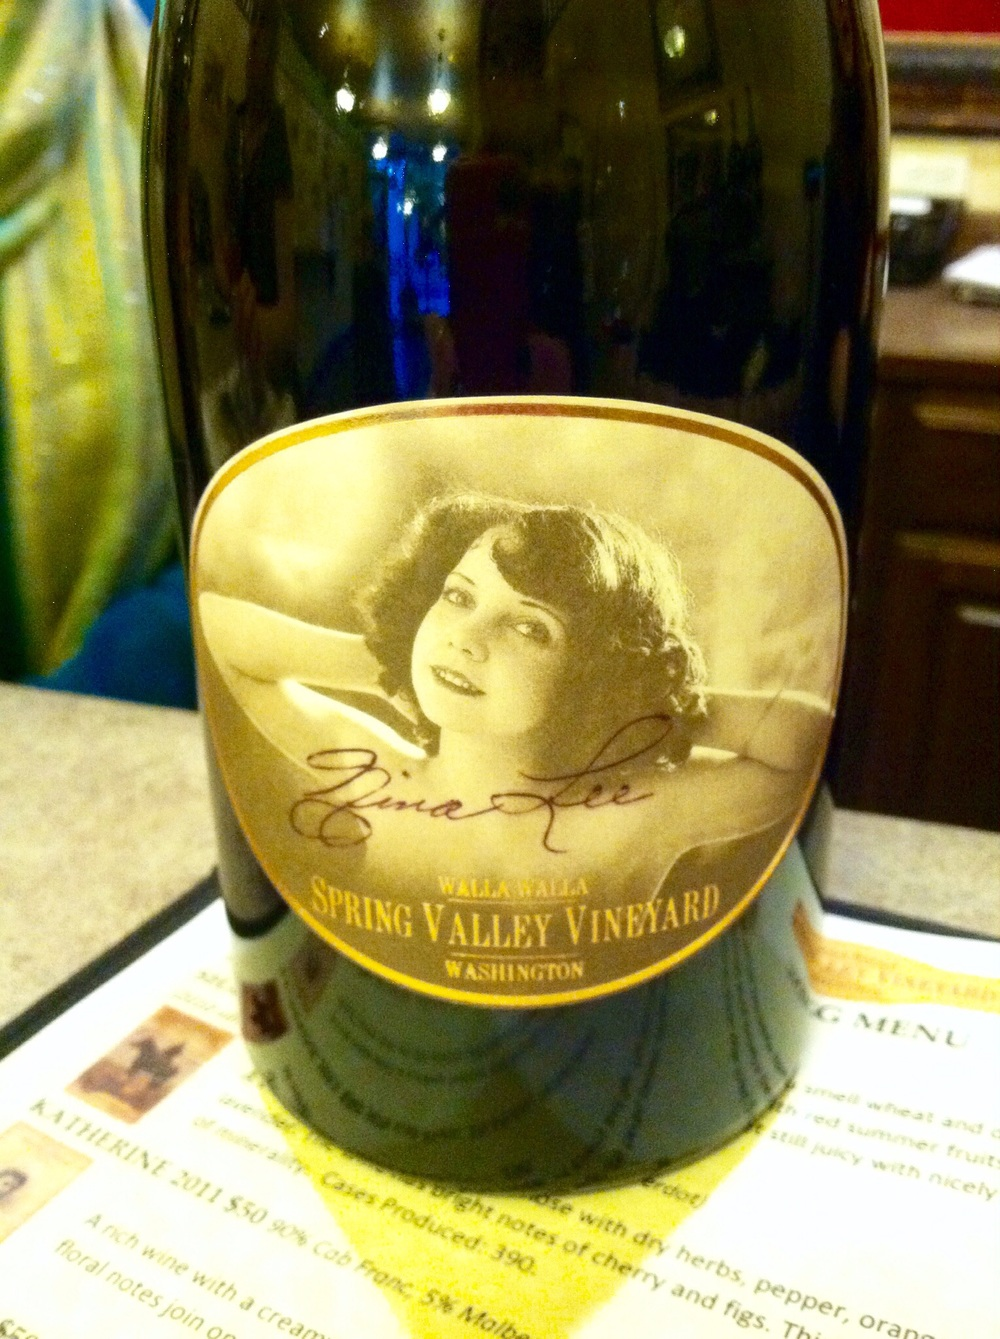 My favorite label - isn't she sassy? Photo by Shana Sokol, Shana Speaks Wine.